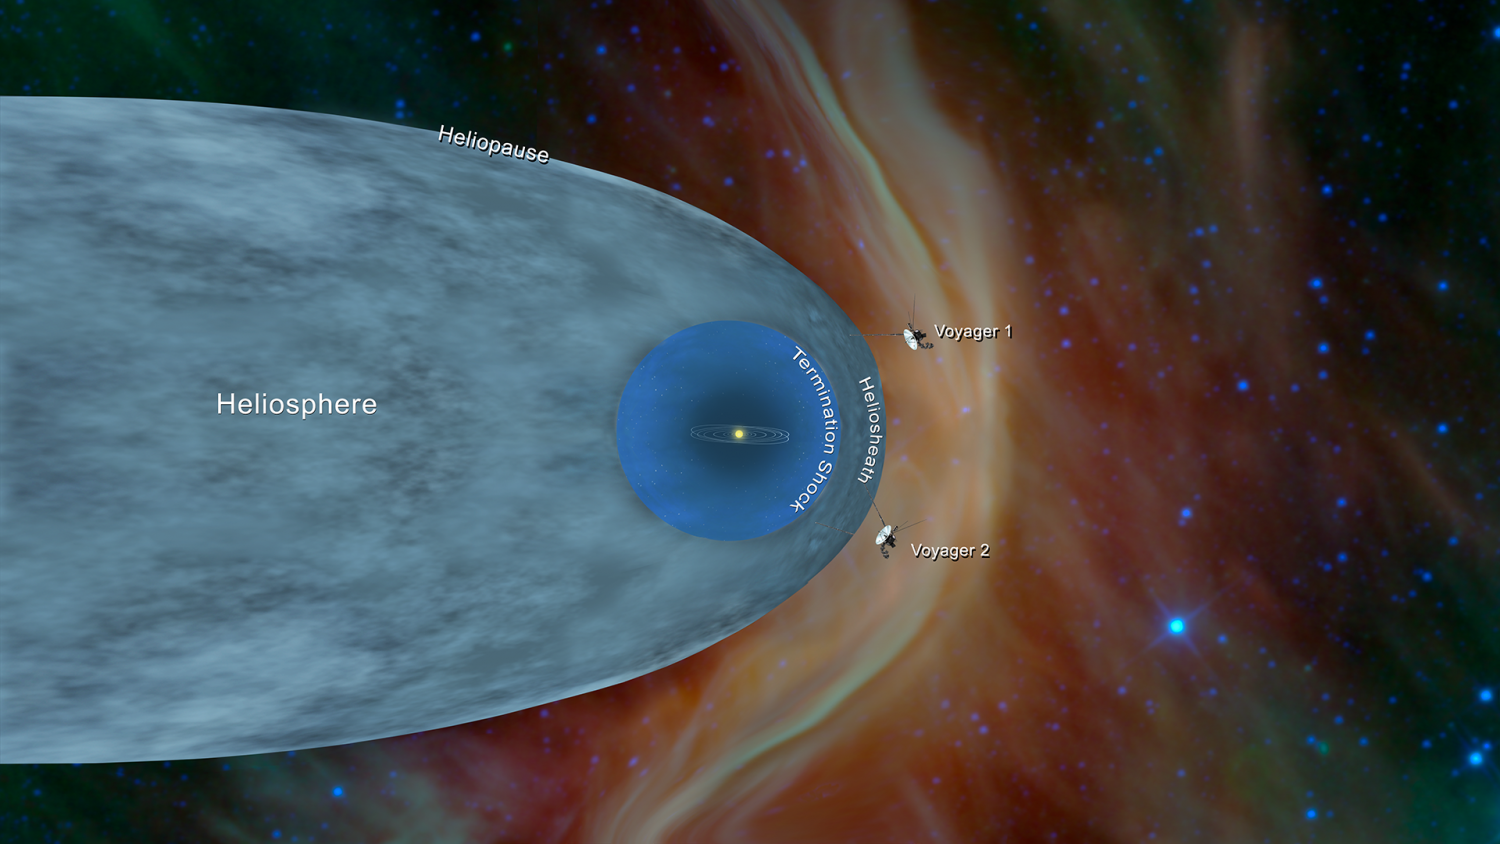 Voyager probes